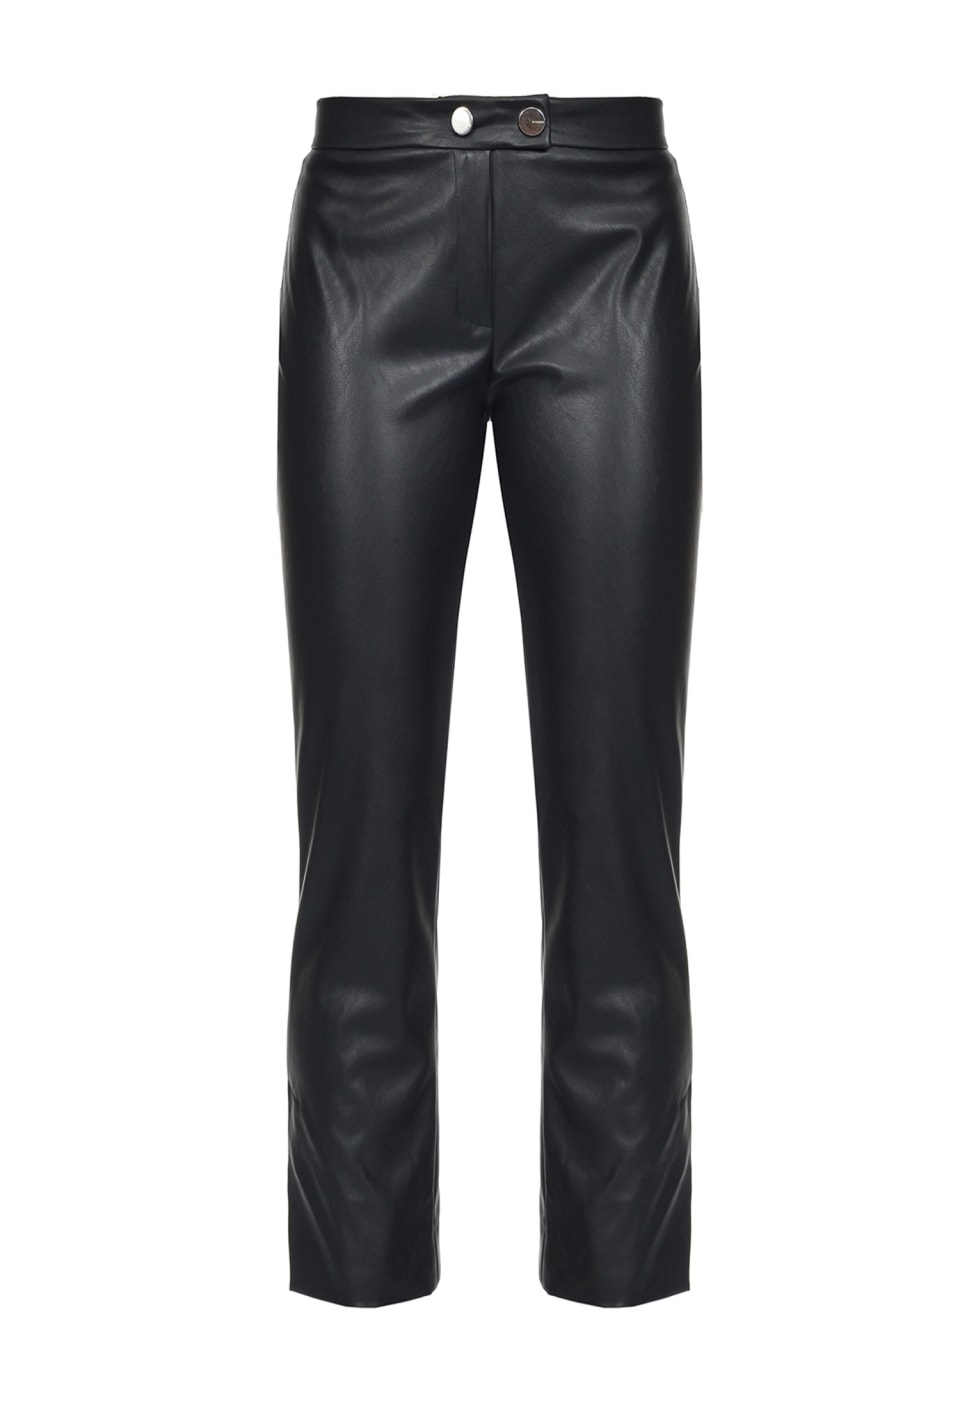 Leather-look trousers - Pinko